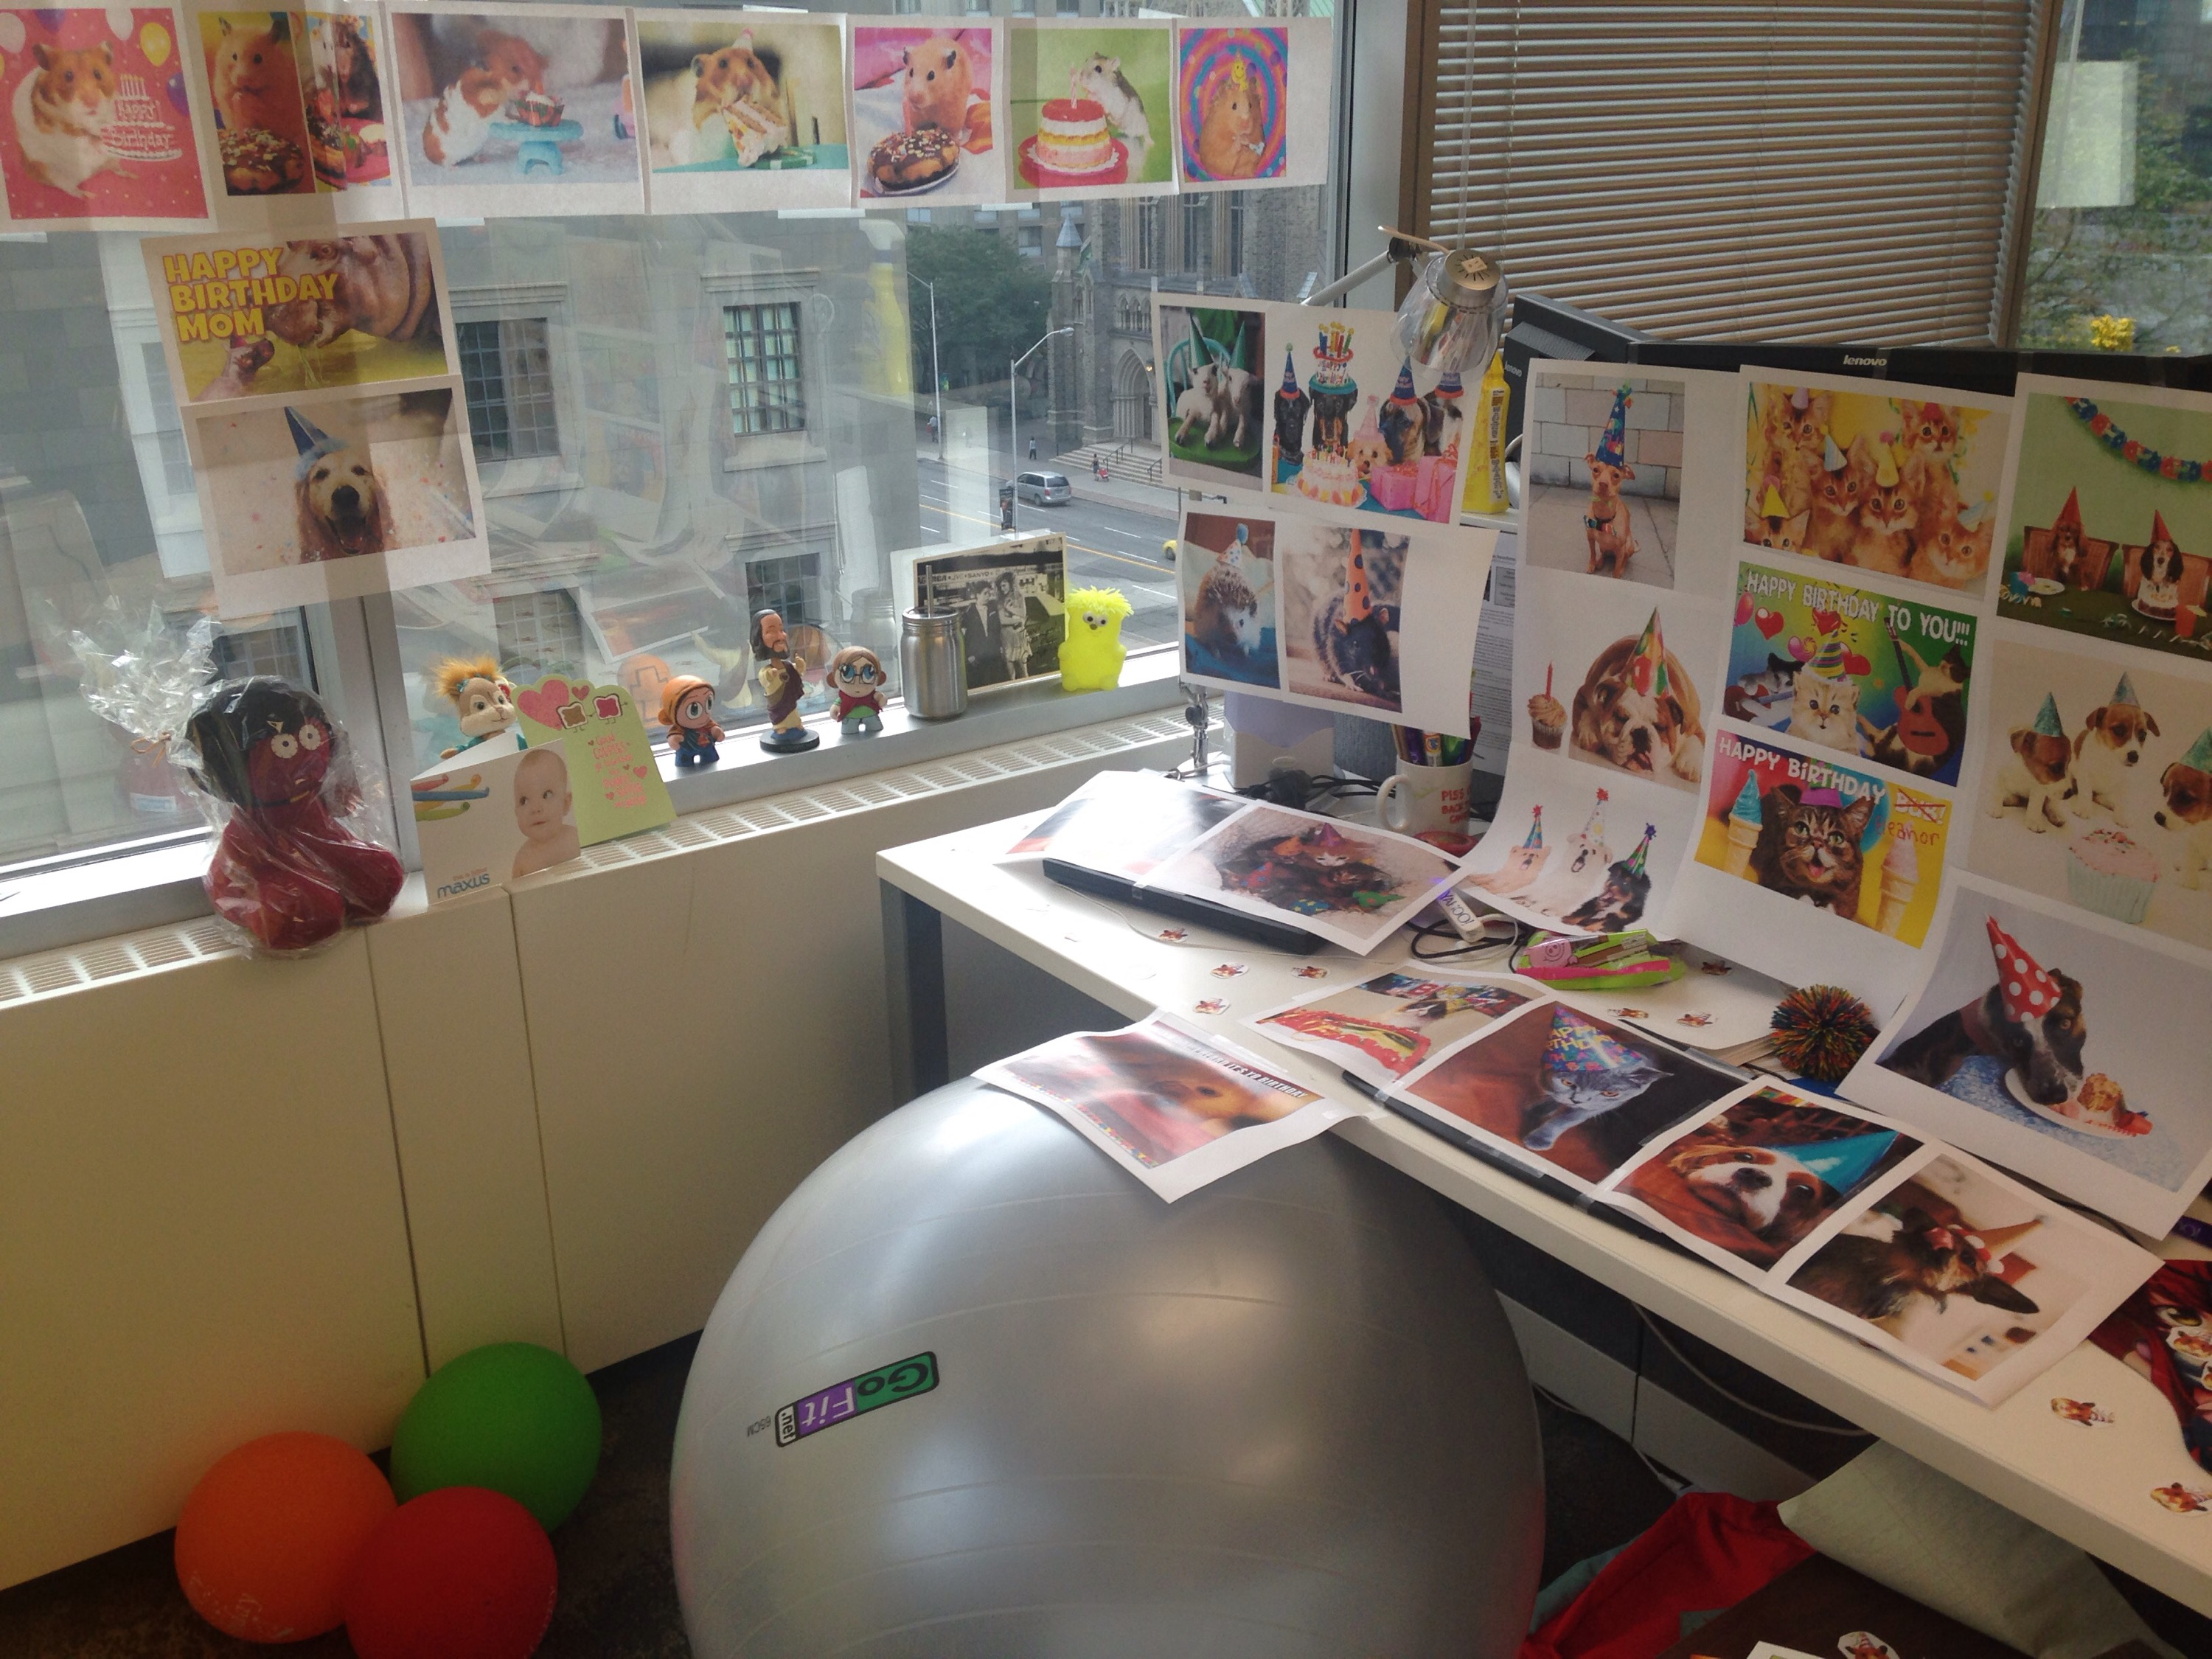 How Decorate Desk For Birthday Decoratingspecial